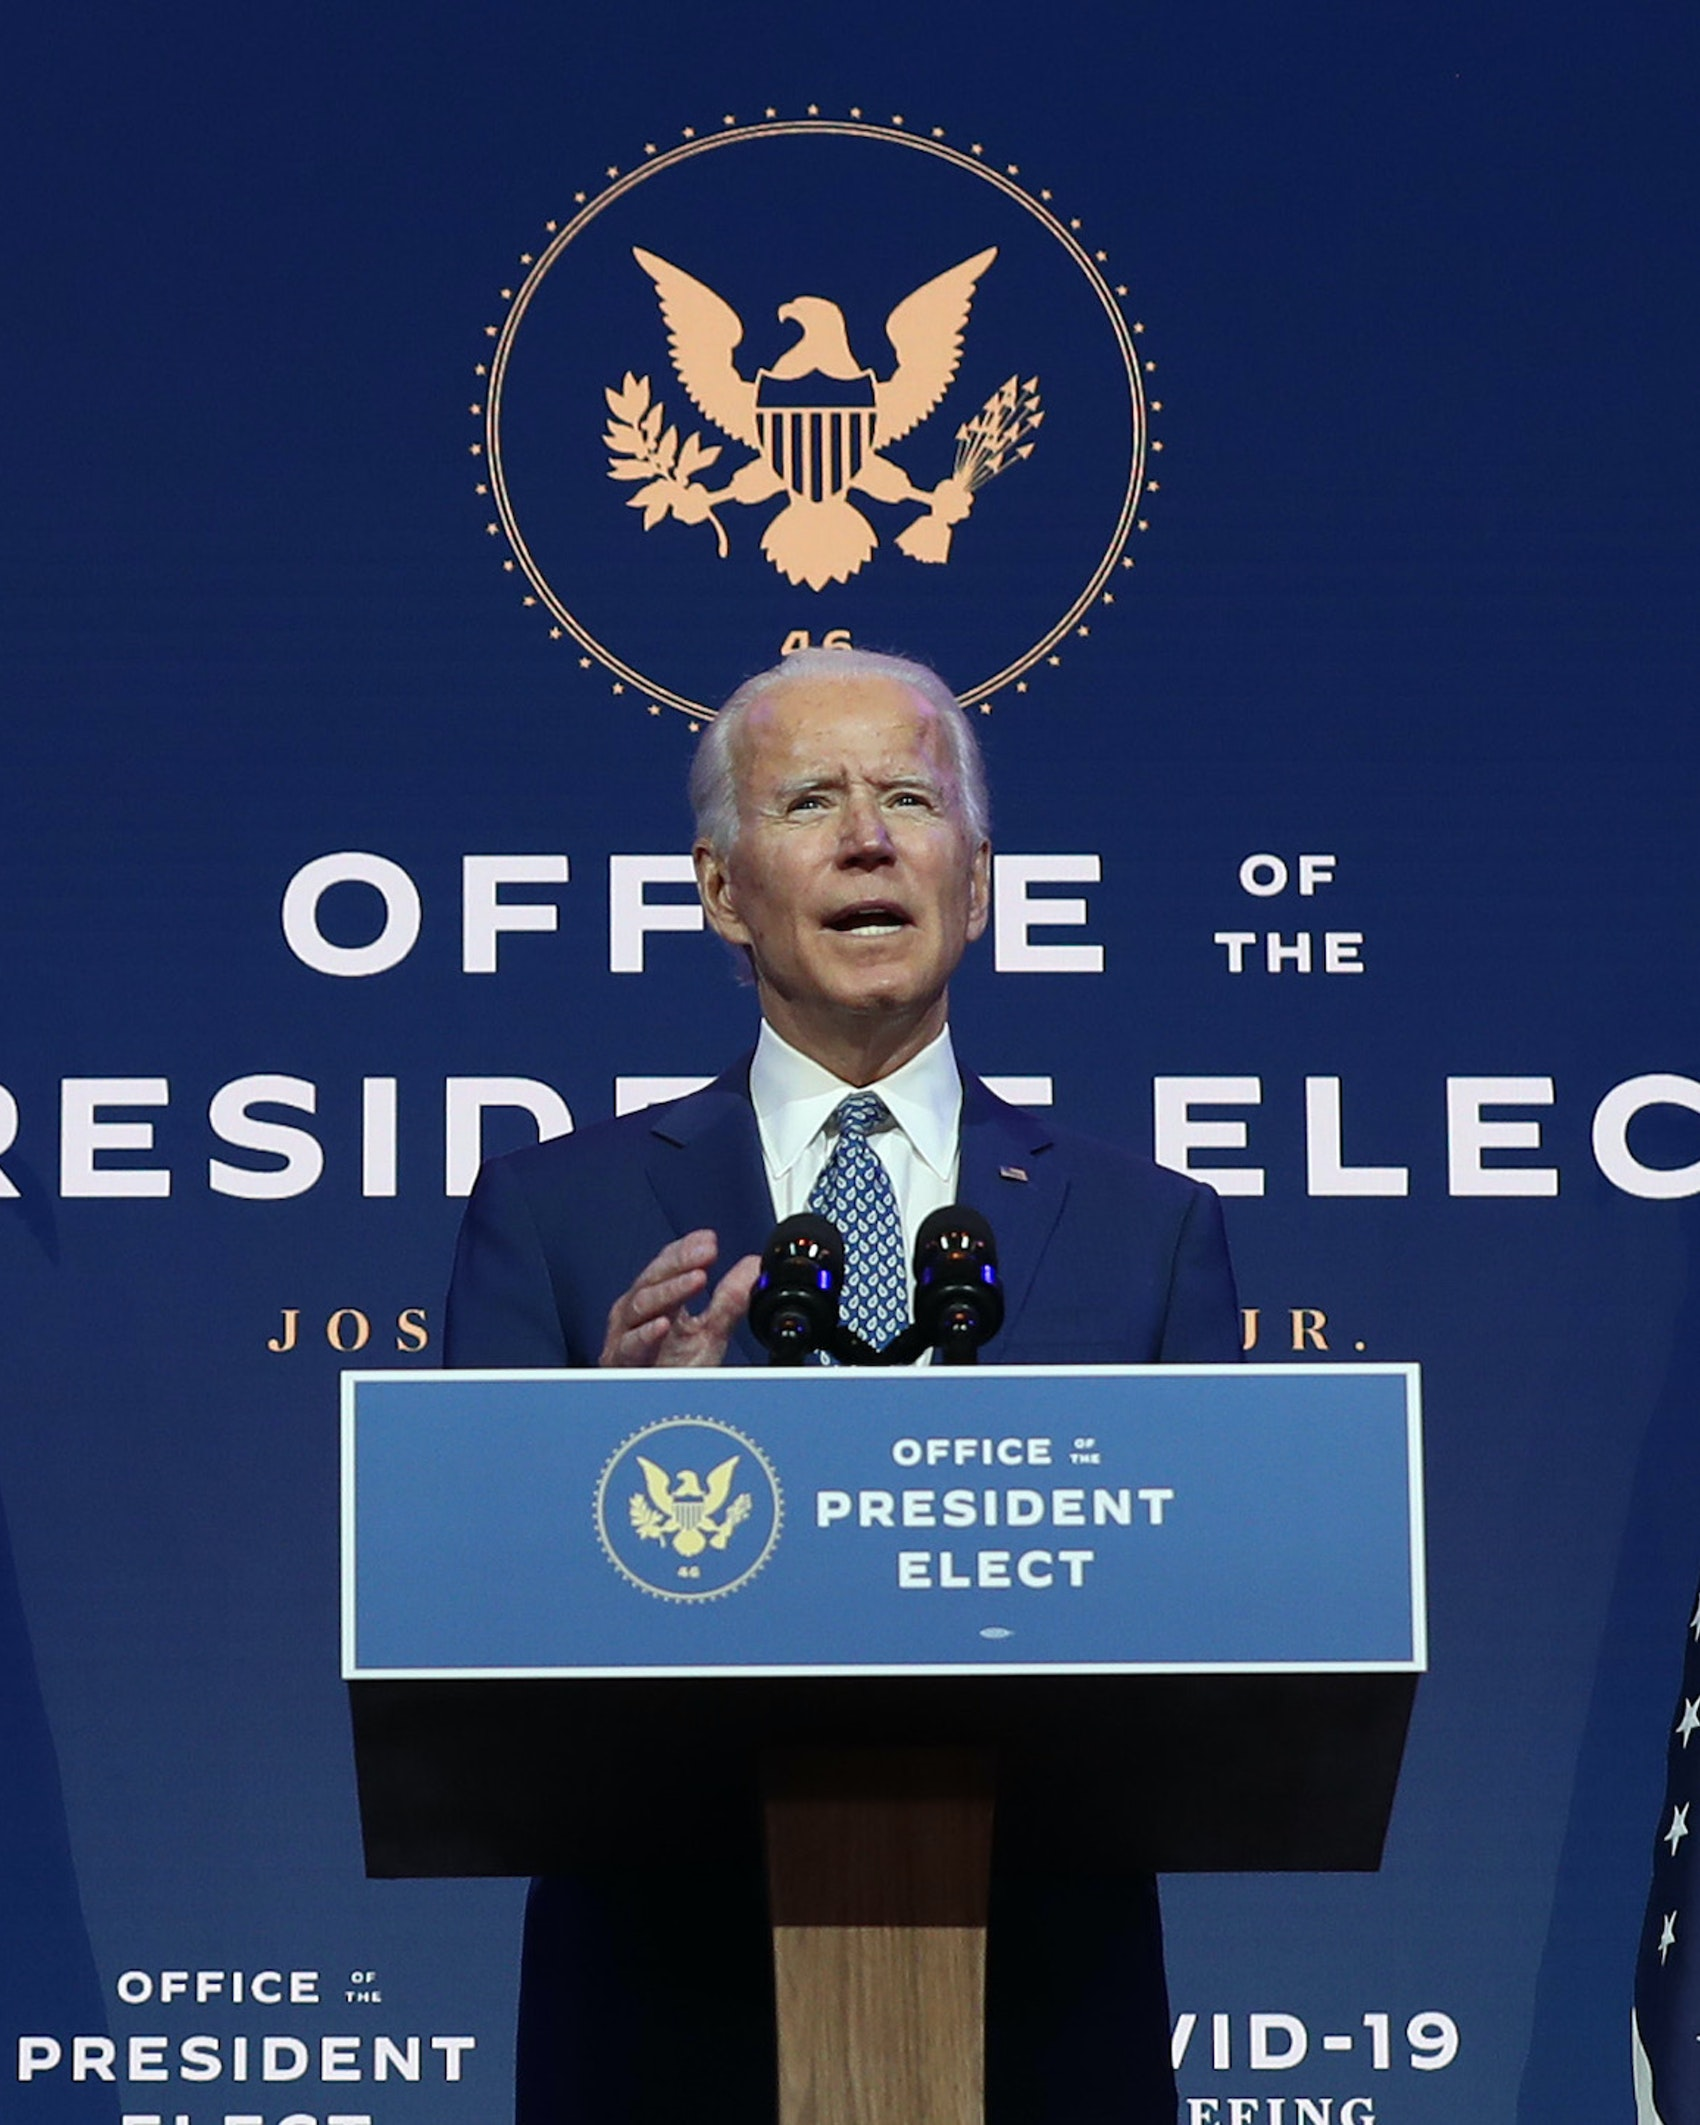 Joe Biden speaks to the media after receiving a briefing from the transition COVID-19 advisory board on November 09, 2020 at the Queen Theater in Wilmington, Delaware. Mr. Biden spoke about how his administration would respond to the coronavirus pandemic. (Photo by Joe Raedle/Getty Images)